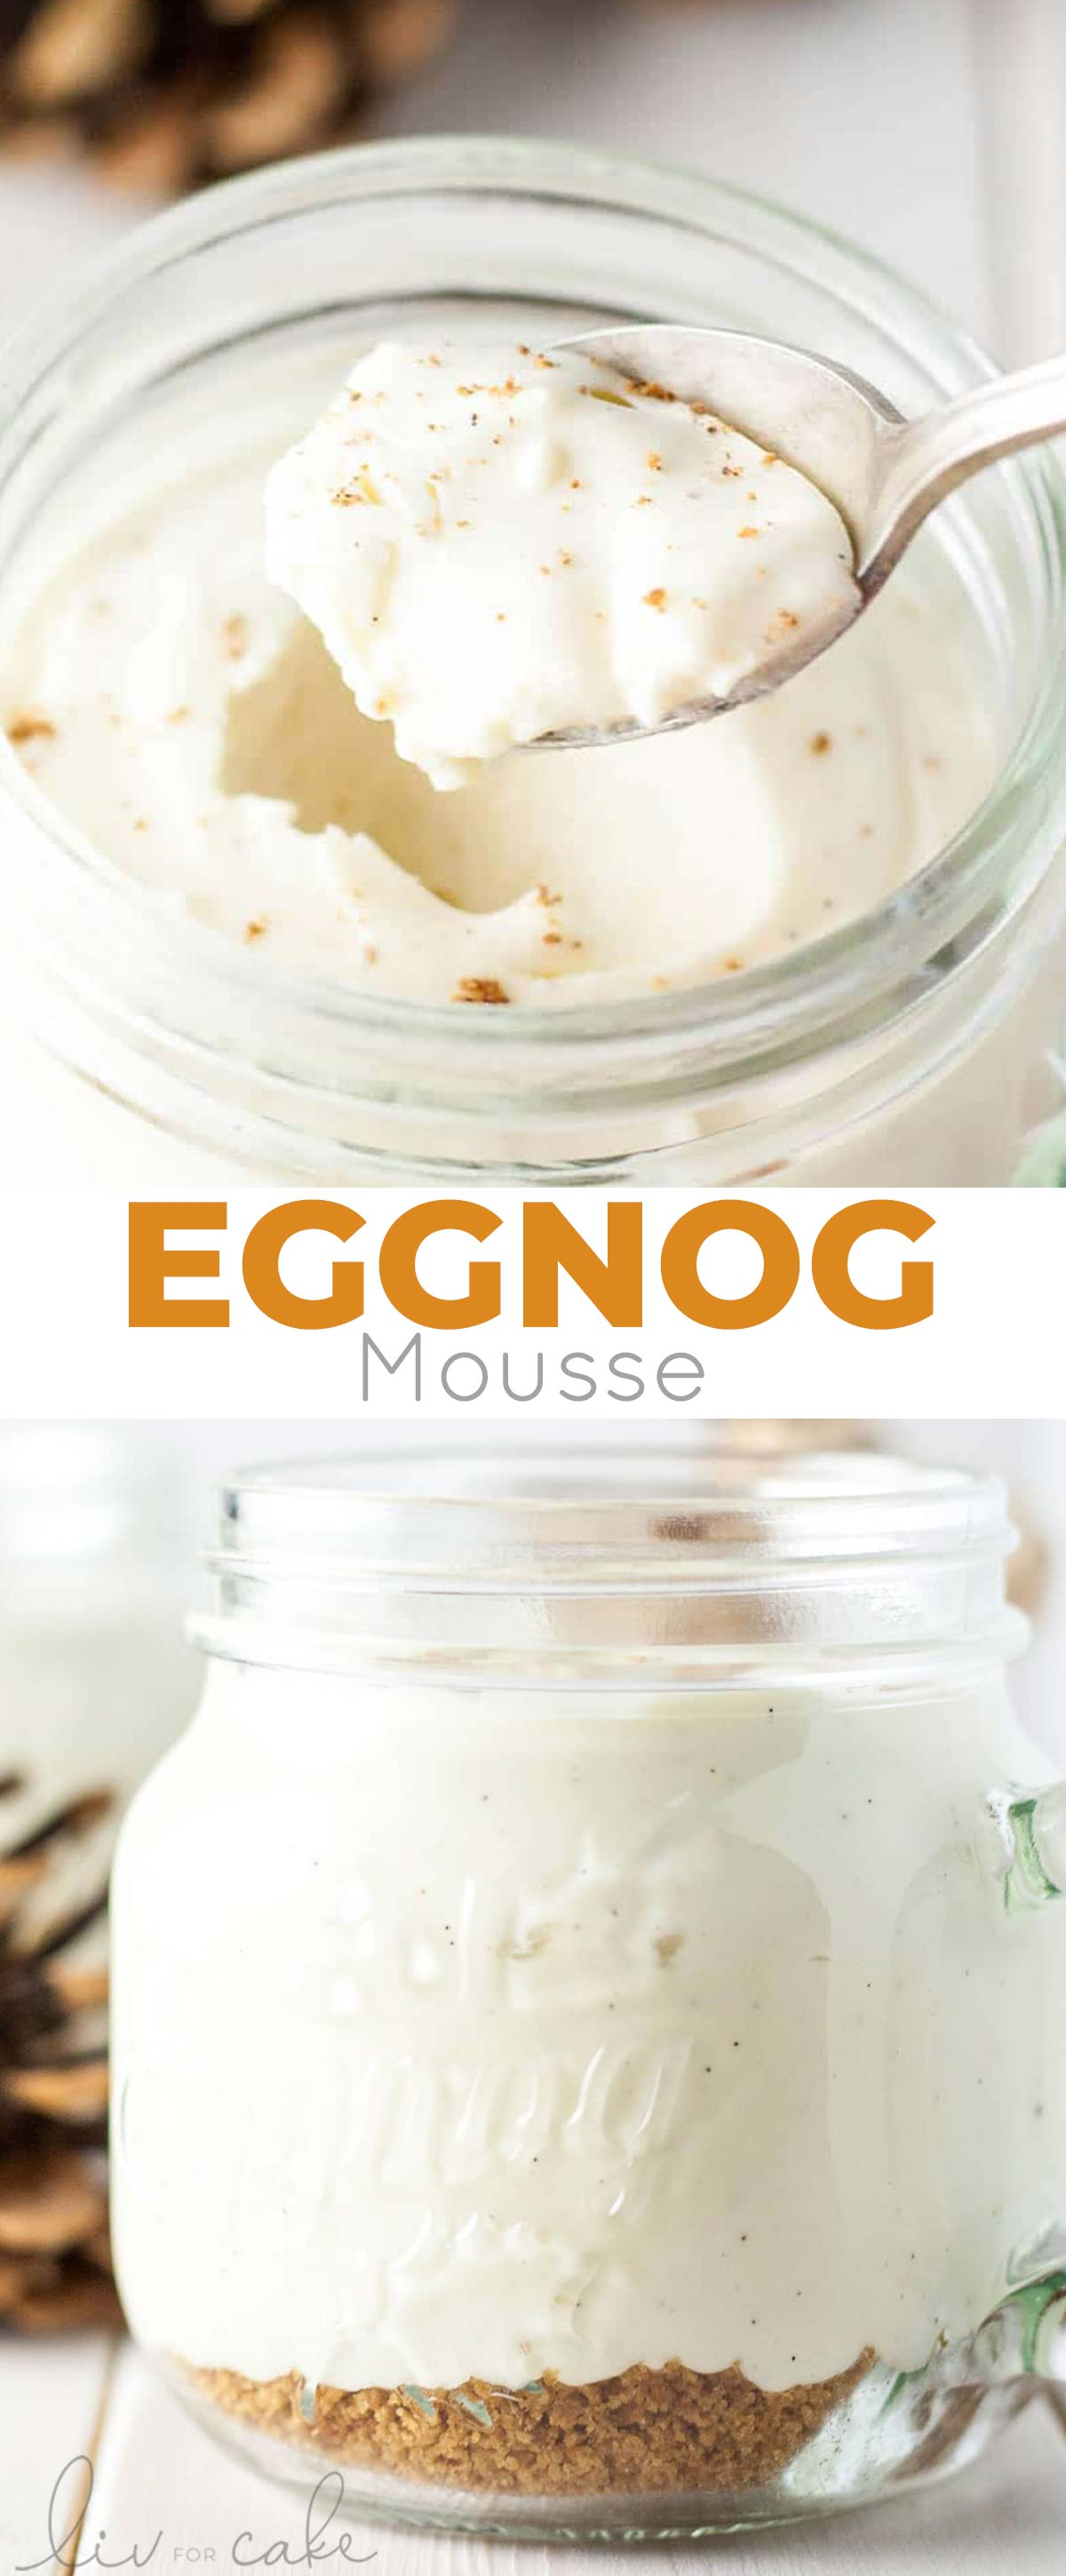 eggnog mousse collage